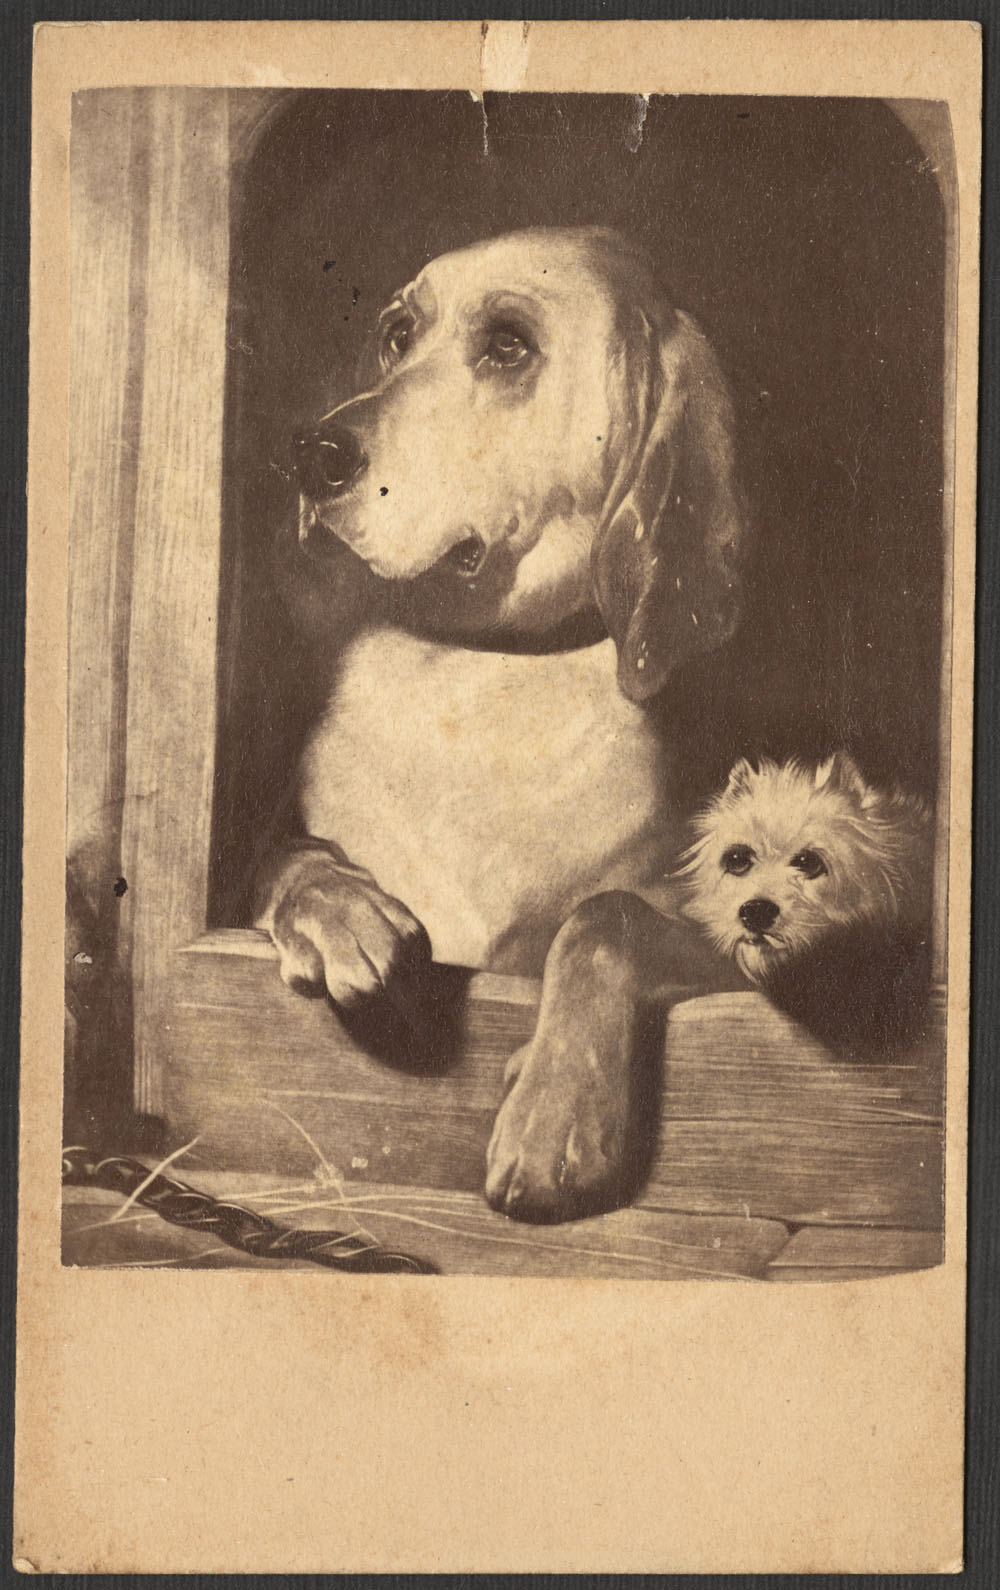 A black-and-white photolithograph of two dogs, one large and one small, looking out from the entrance to a doghouse.